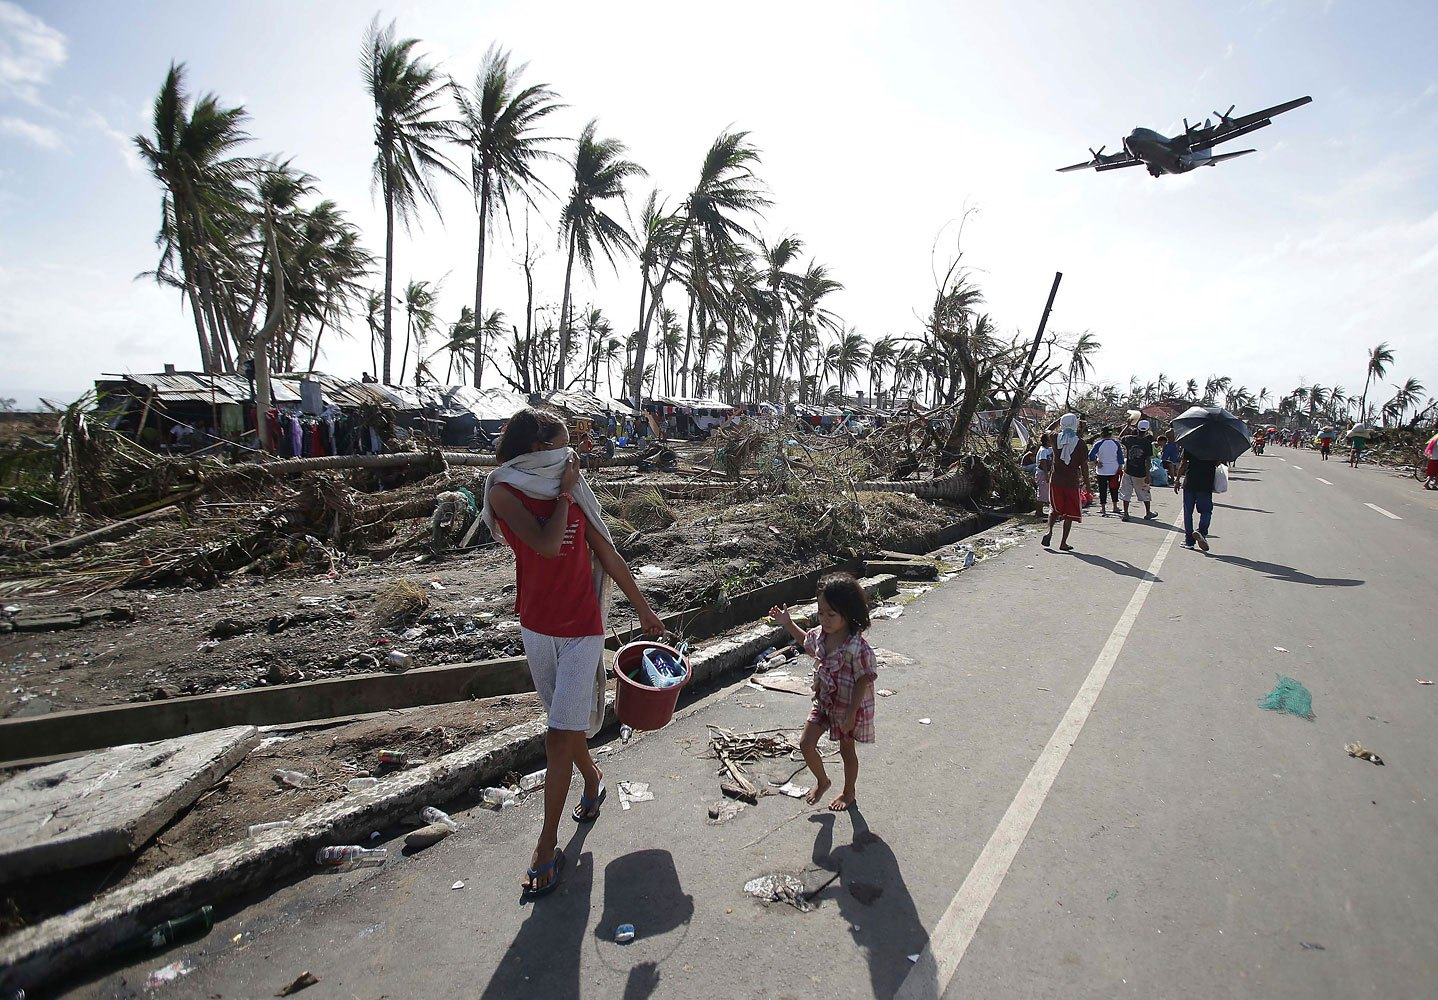 Survivors look up at a military C-130 plane as it arrives at typhoon-ravaged Tacloban city, Leyte province in central Philippines on Nov. 11, 2013.